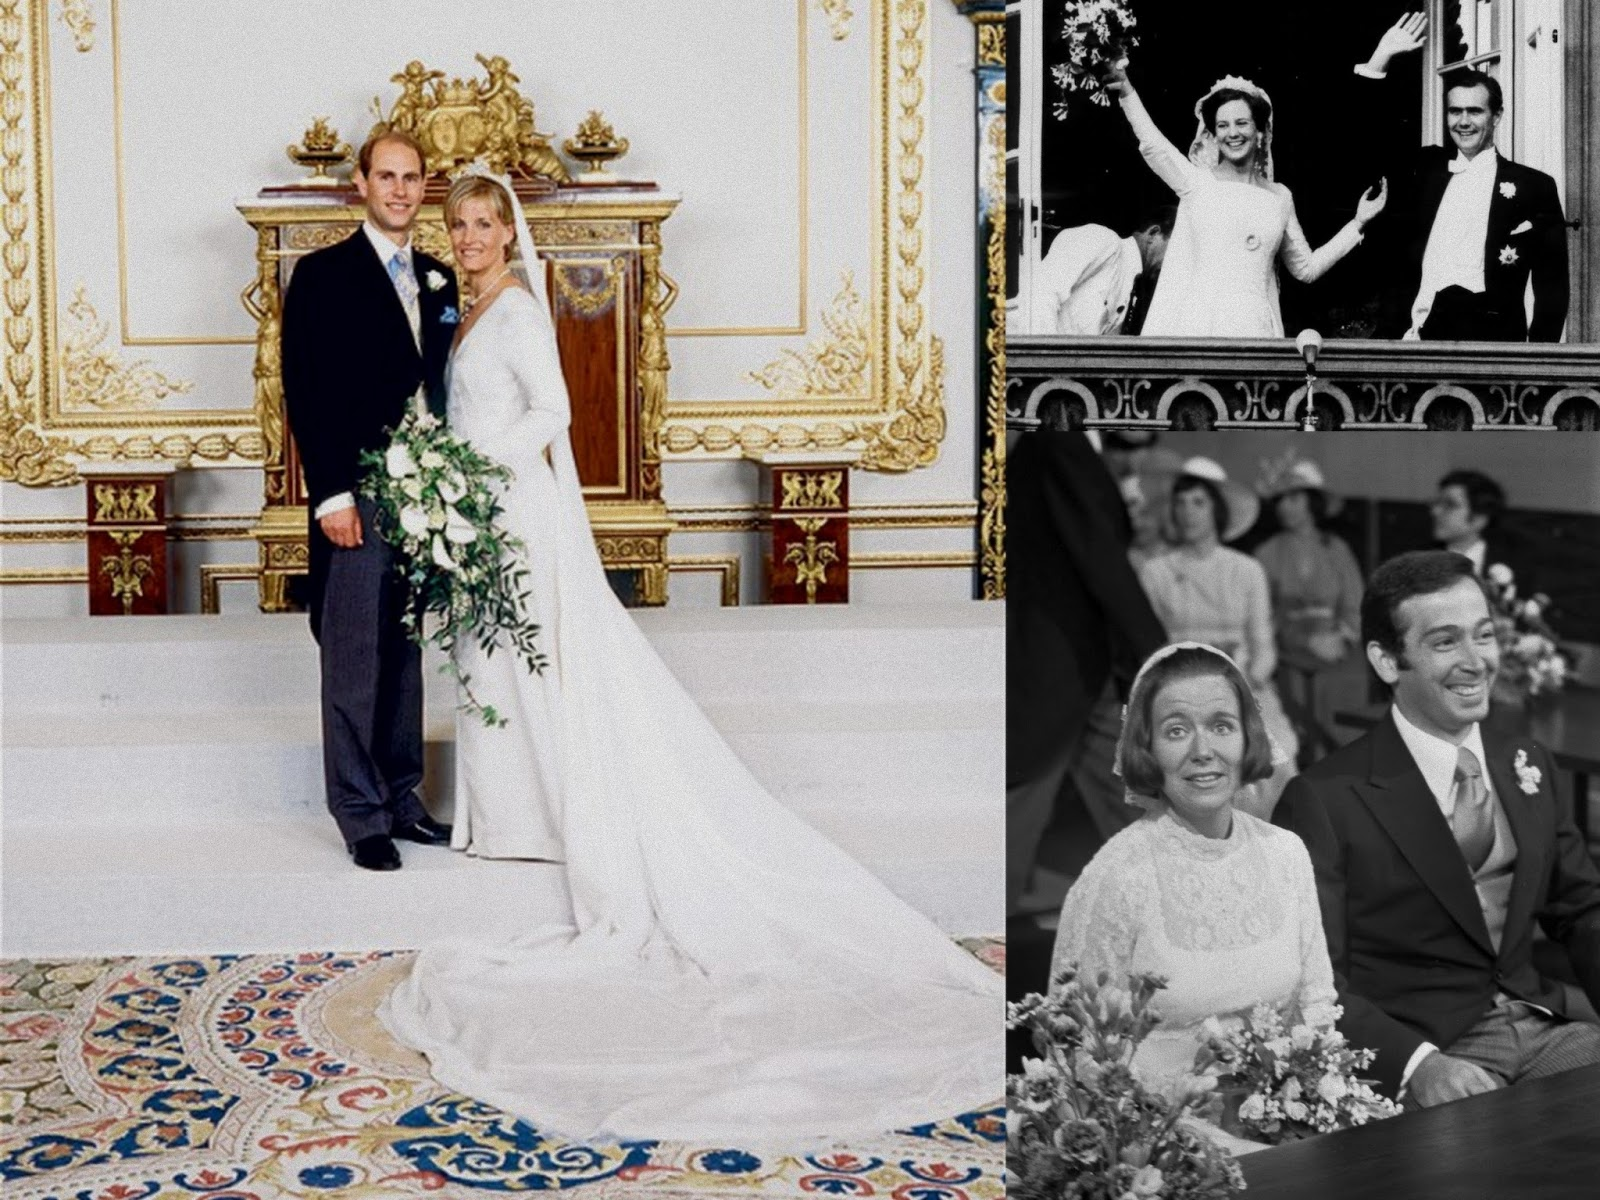 Queens of England: 8 Royal June Brides